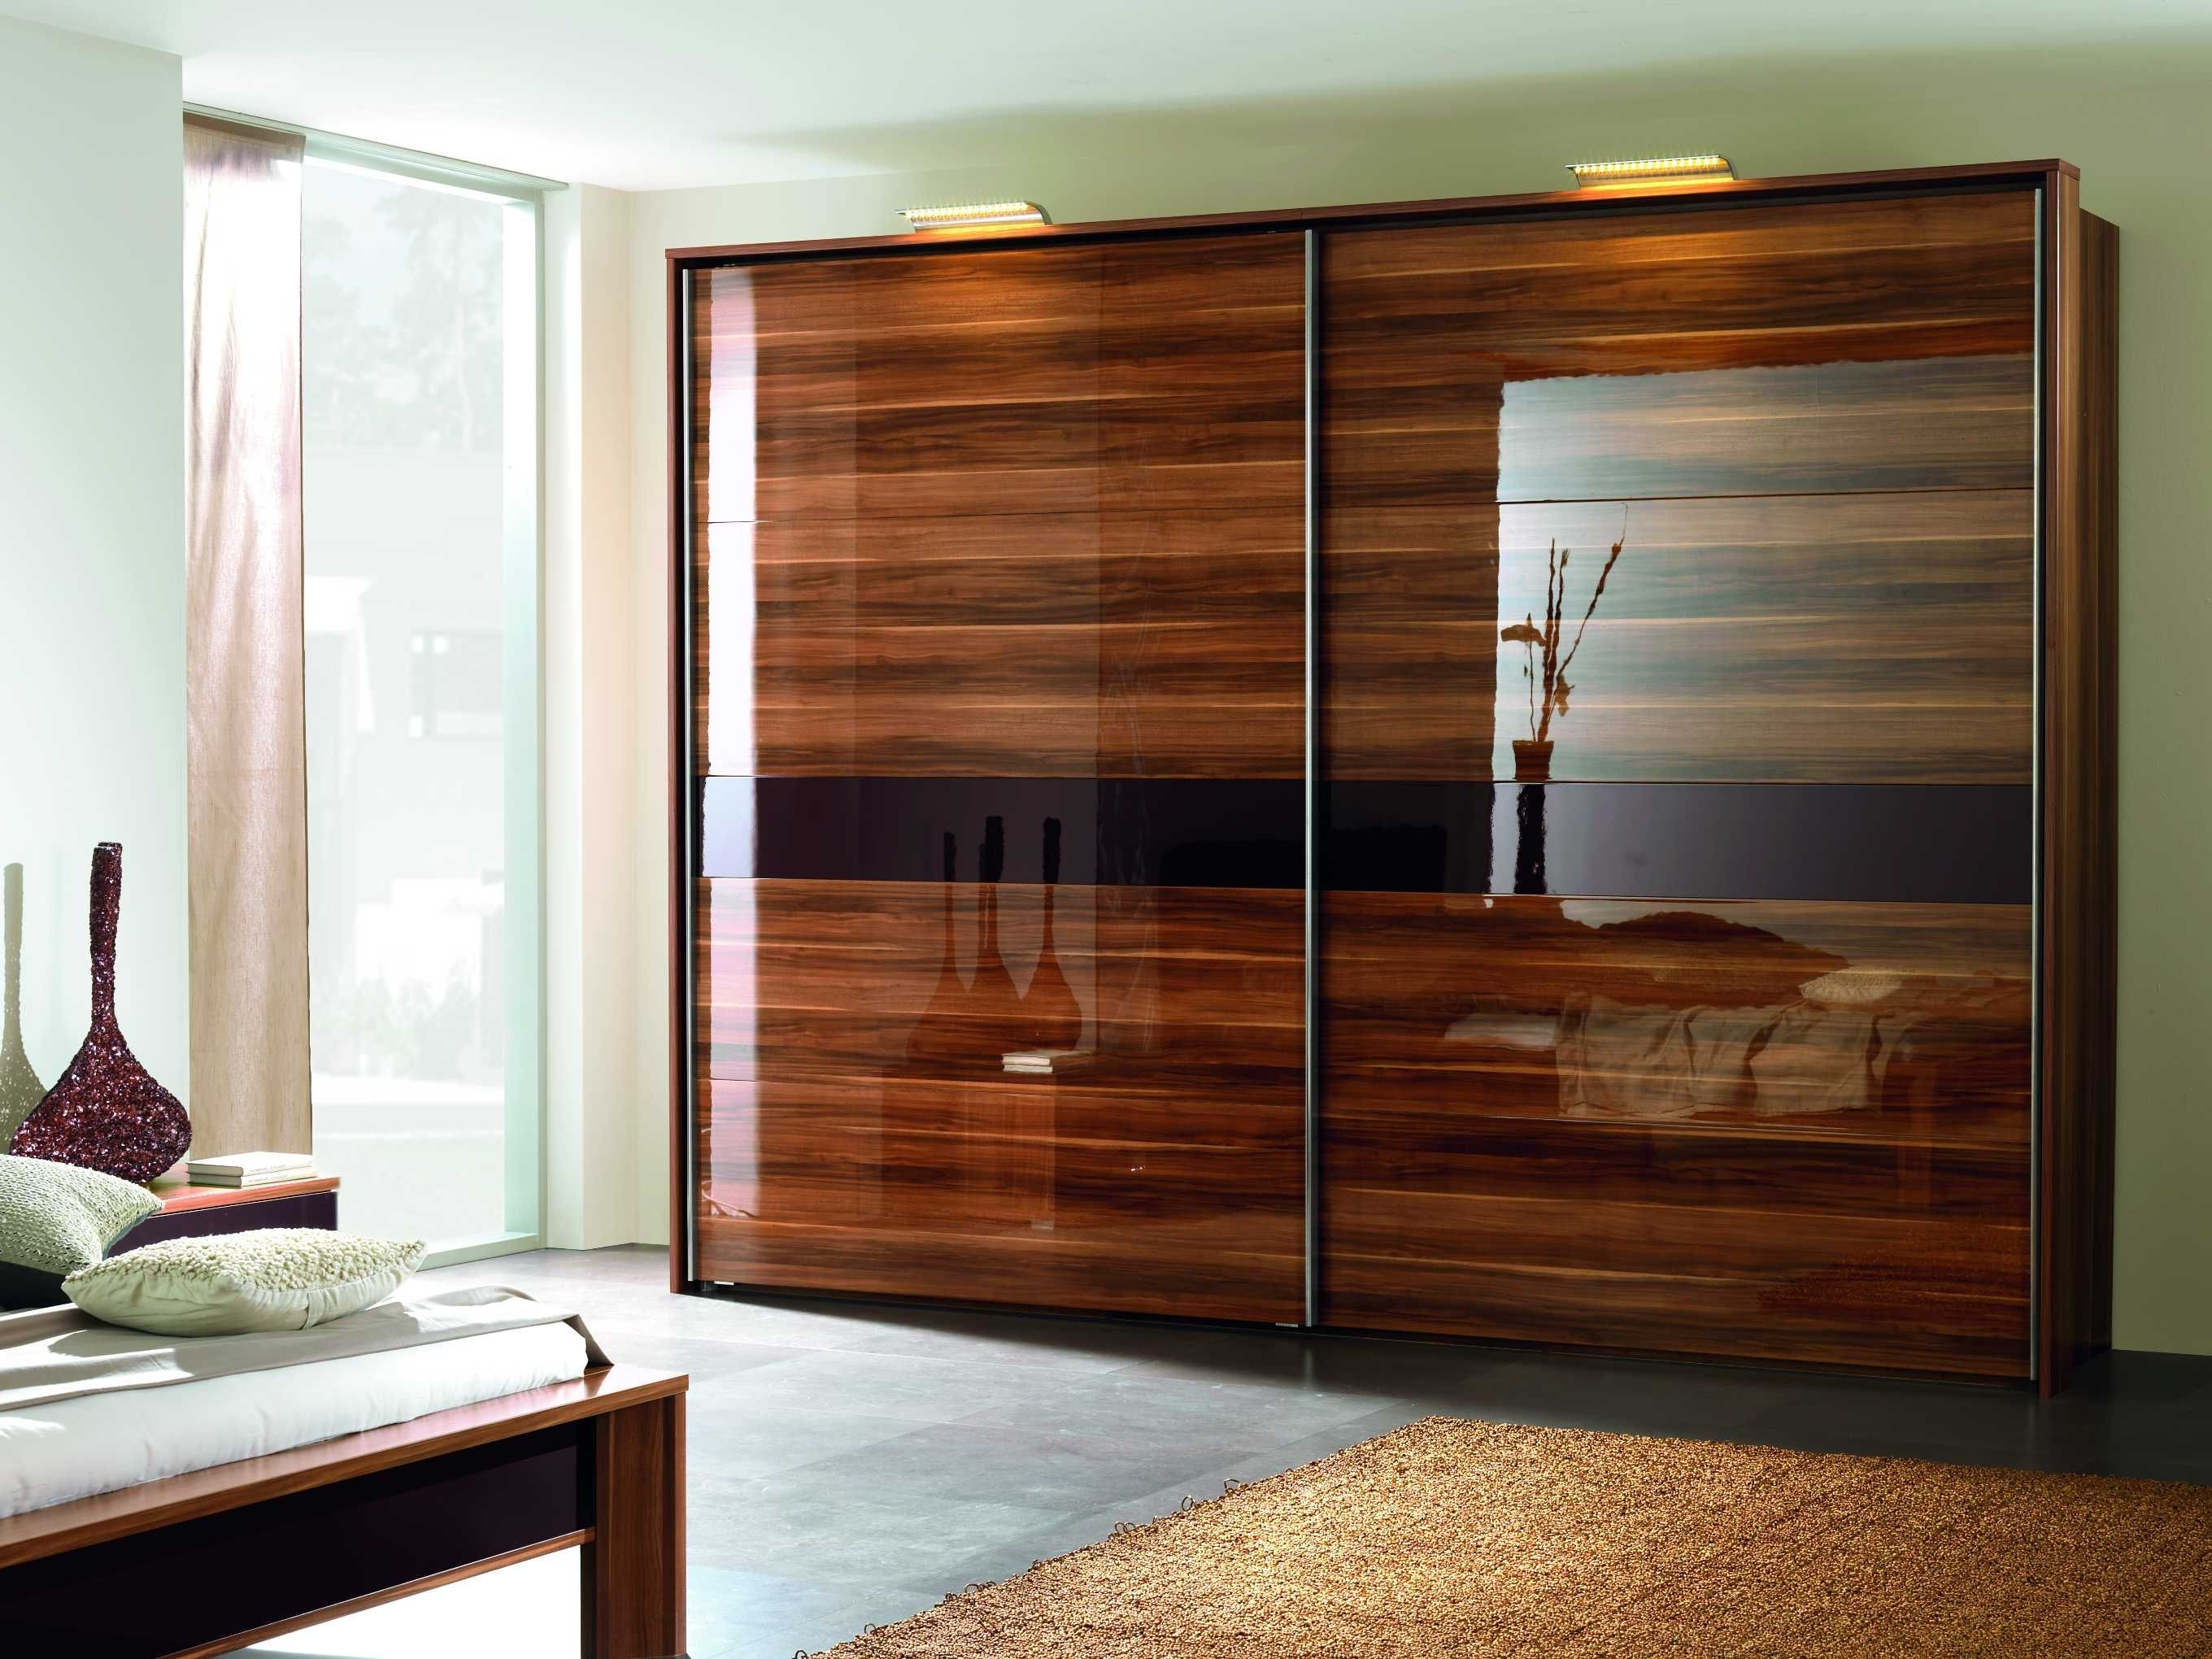 Cream Gloss Wardrobes With Preferred Furniture, Luxury Wardrobe Design With Sliding Doors And Cool (View 9 of 15)